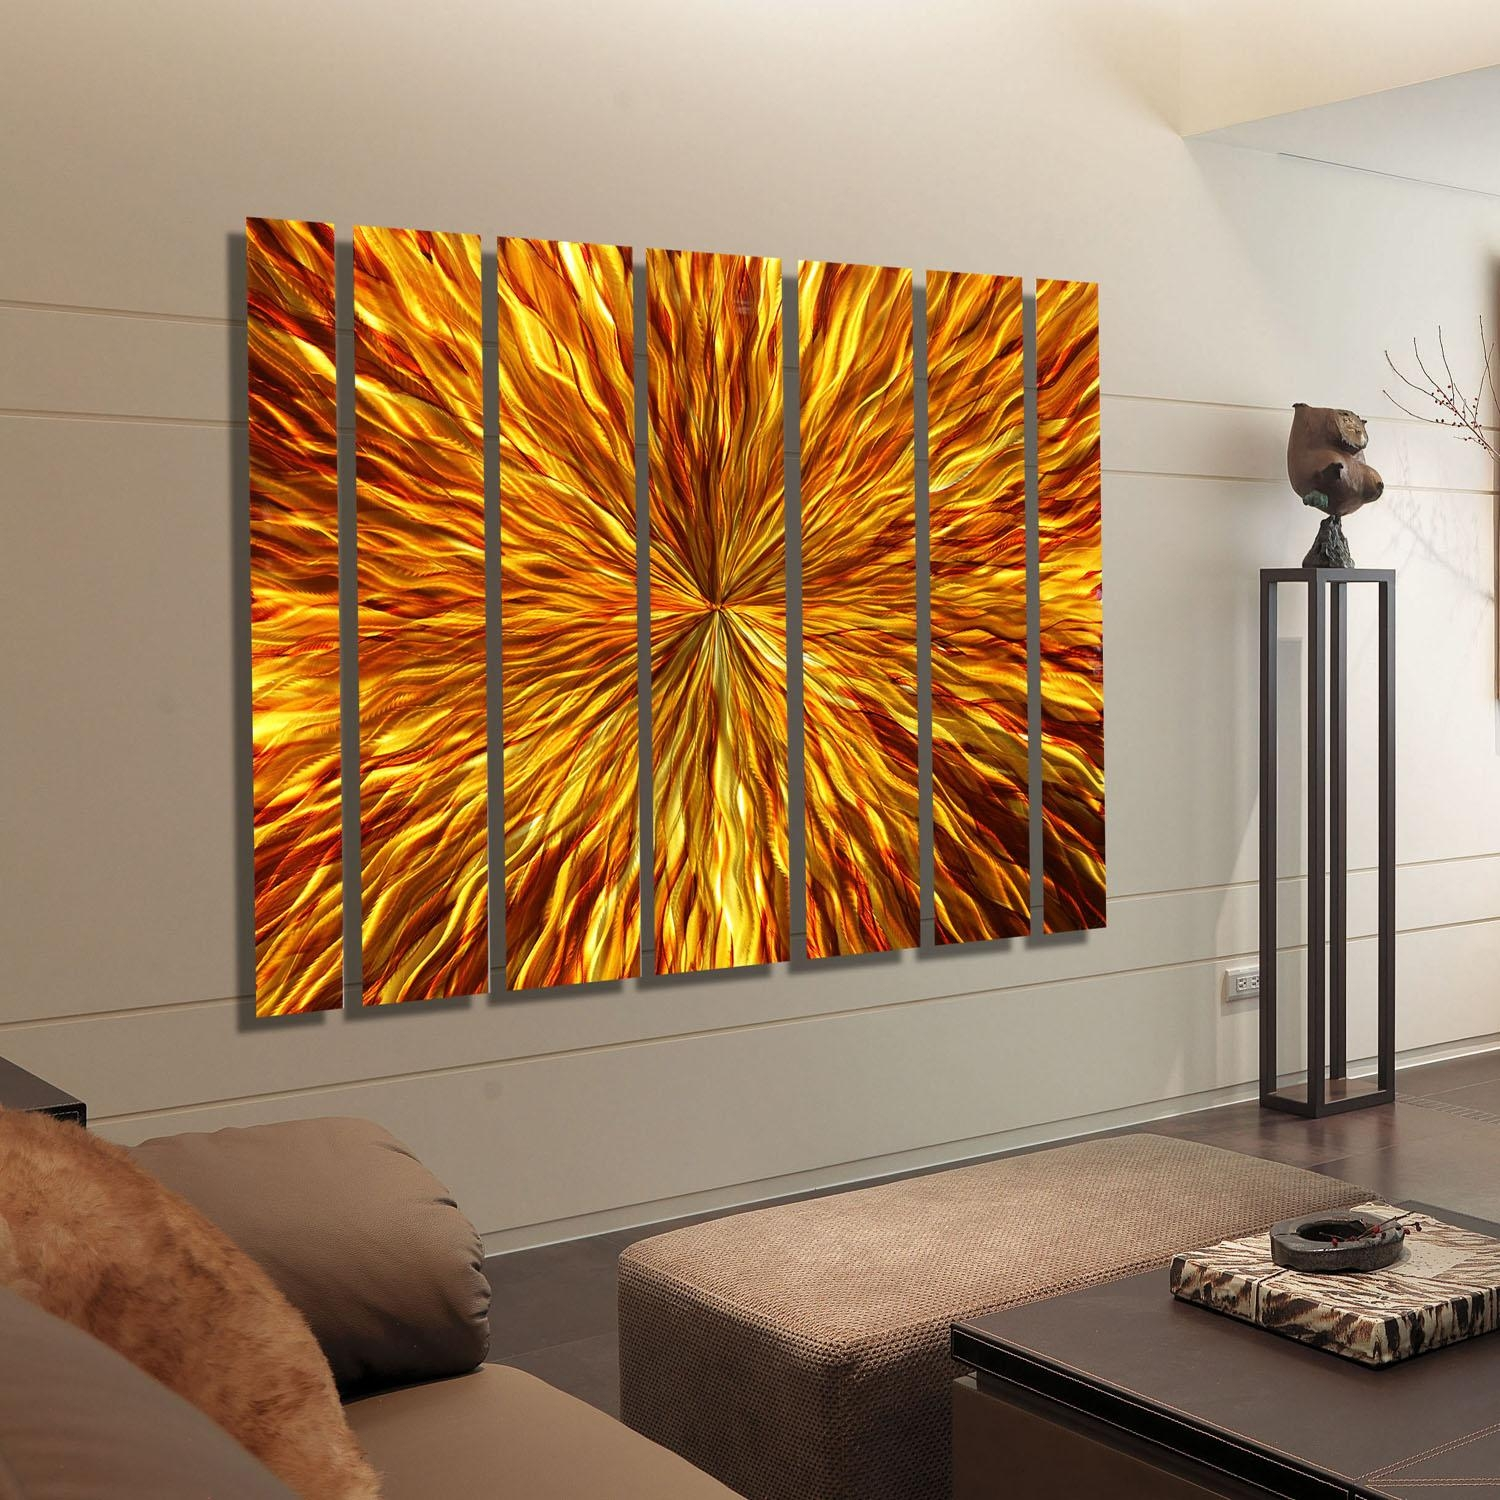 Amber Vortex Xl – Extra Large Modern Metal Wall Artjon Allen With Regard To Large Abstract Metal Wall Art (Image 5 of 20)